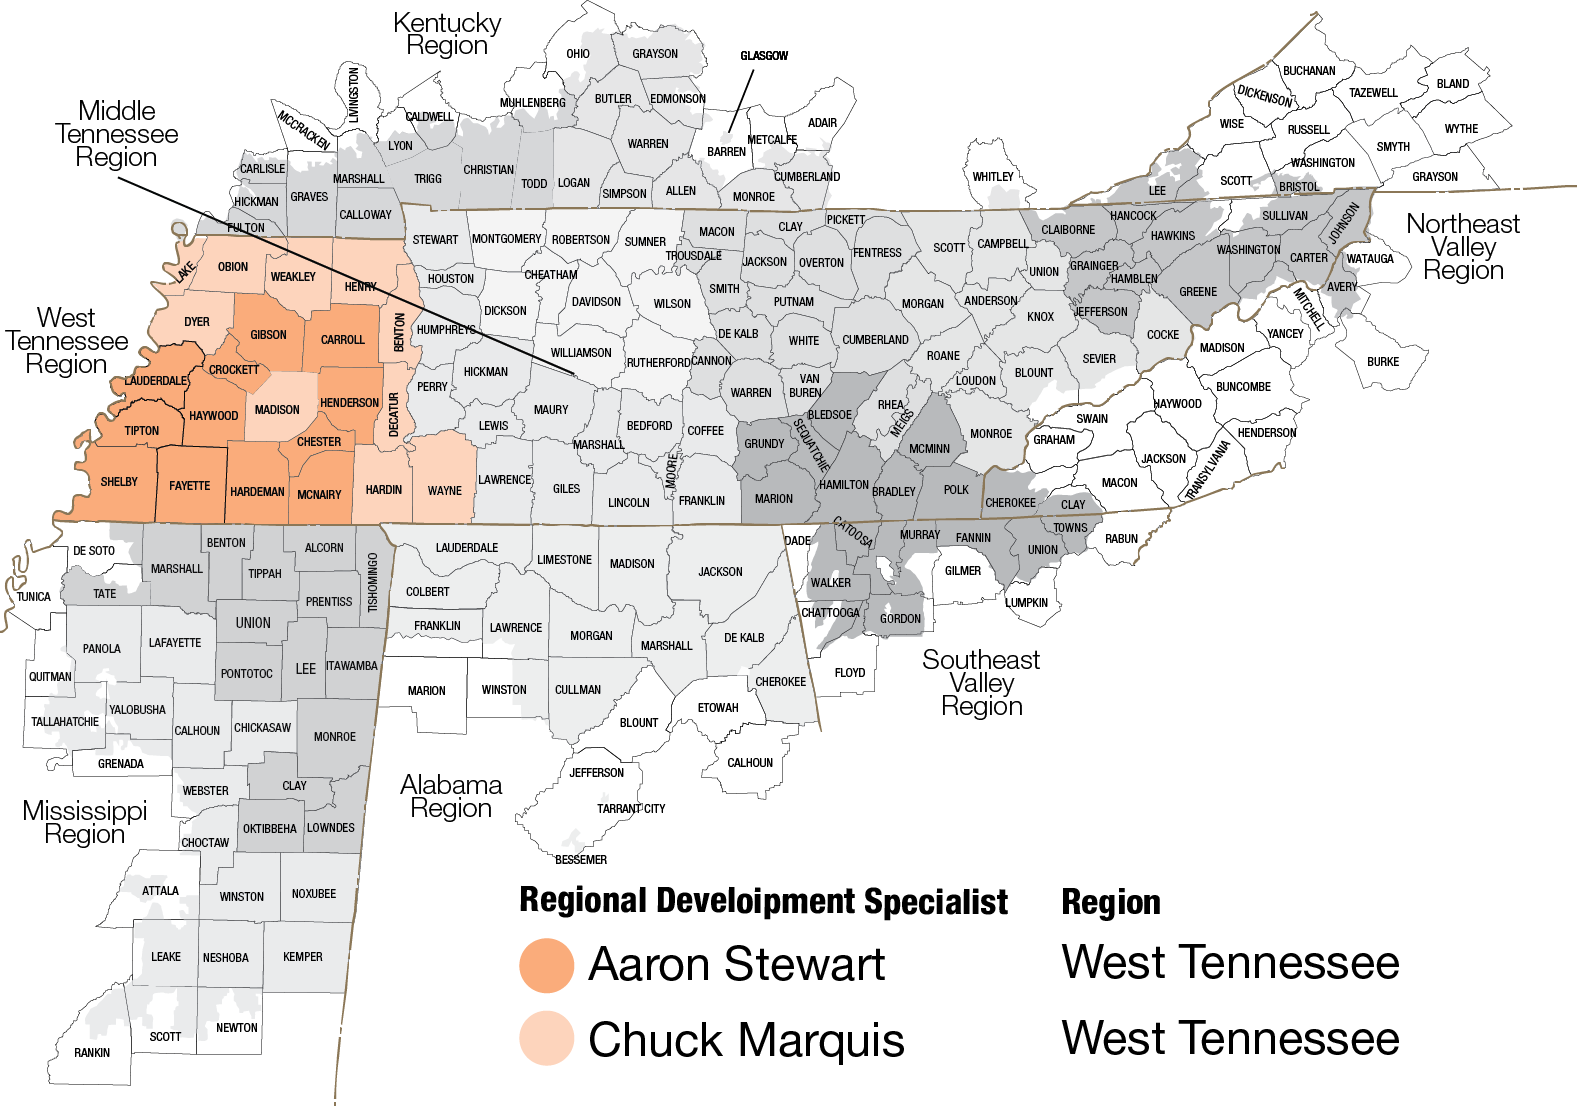 Map of West Tennessee region